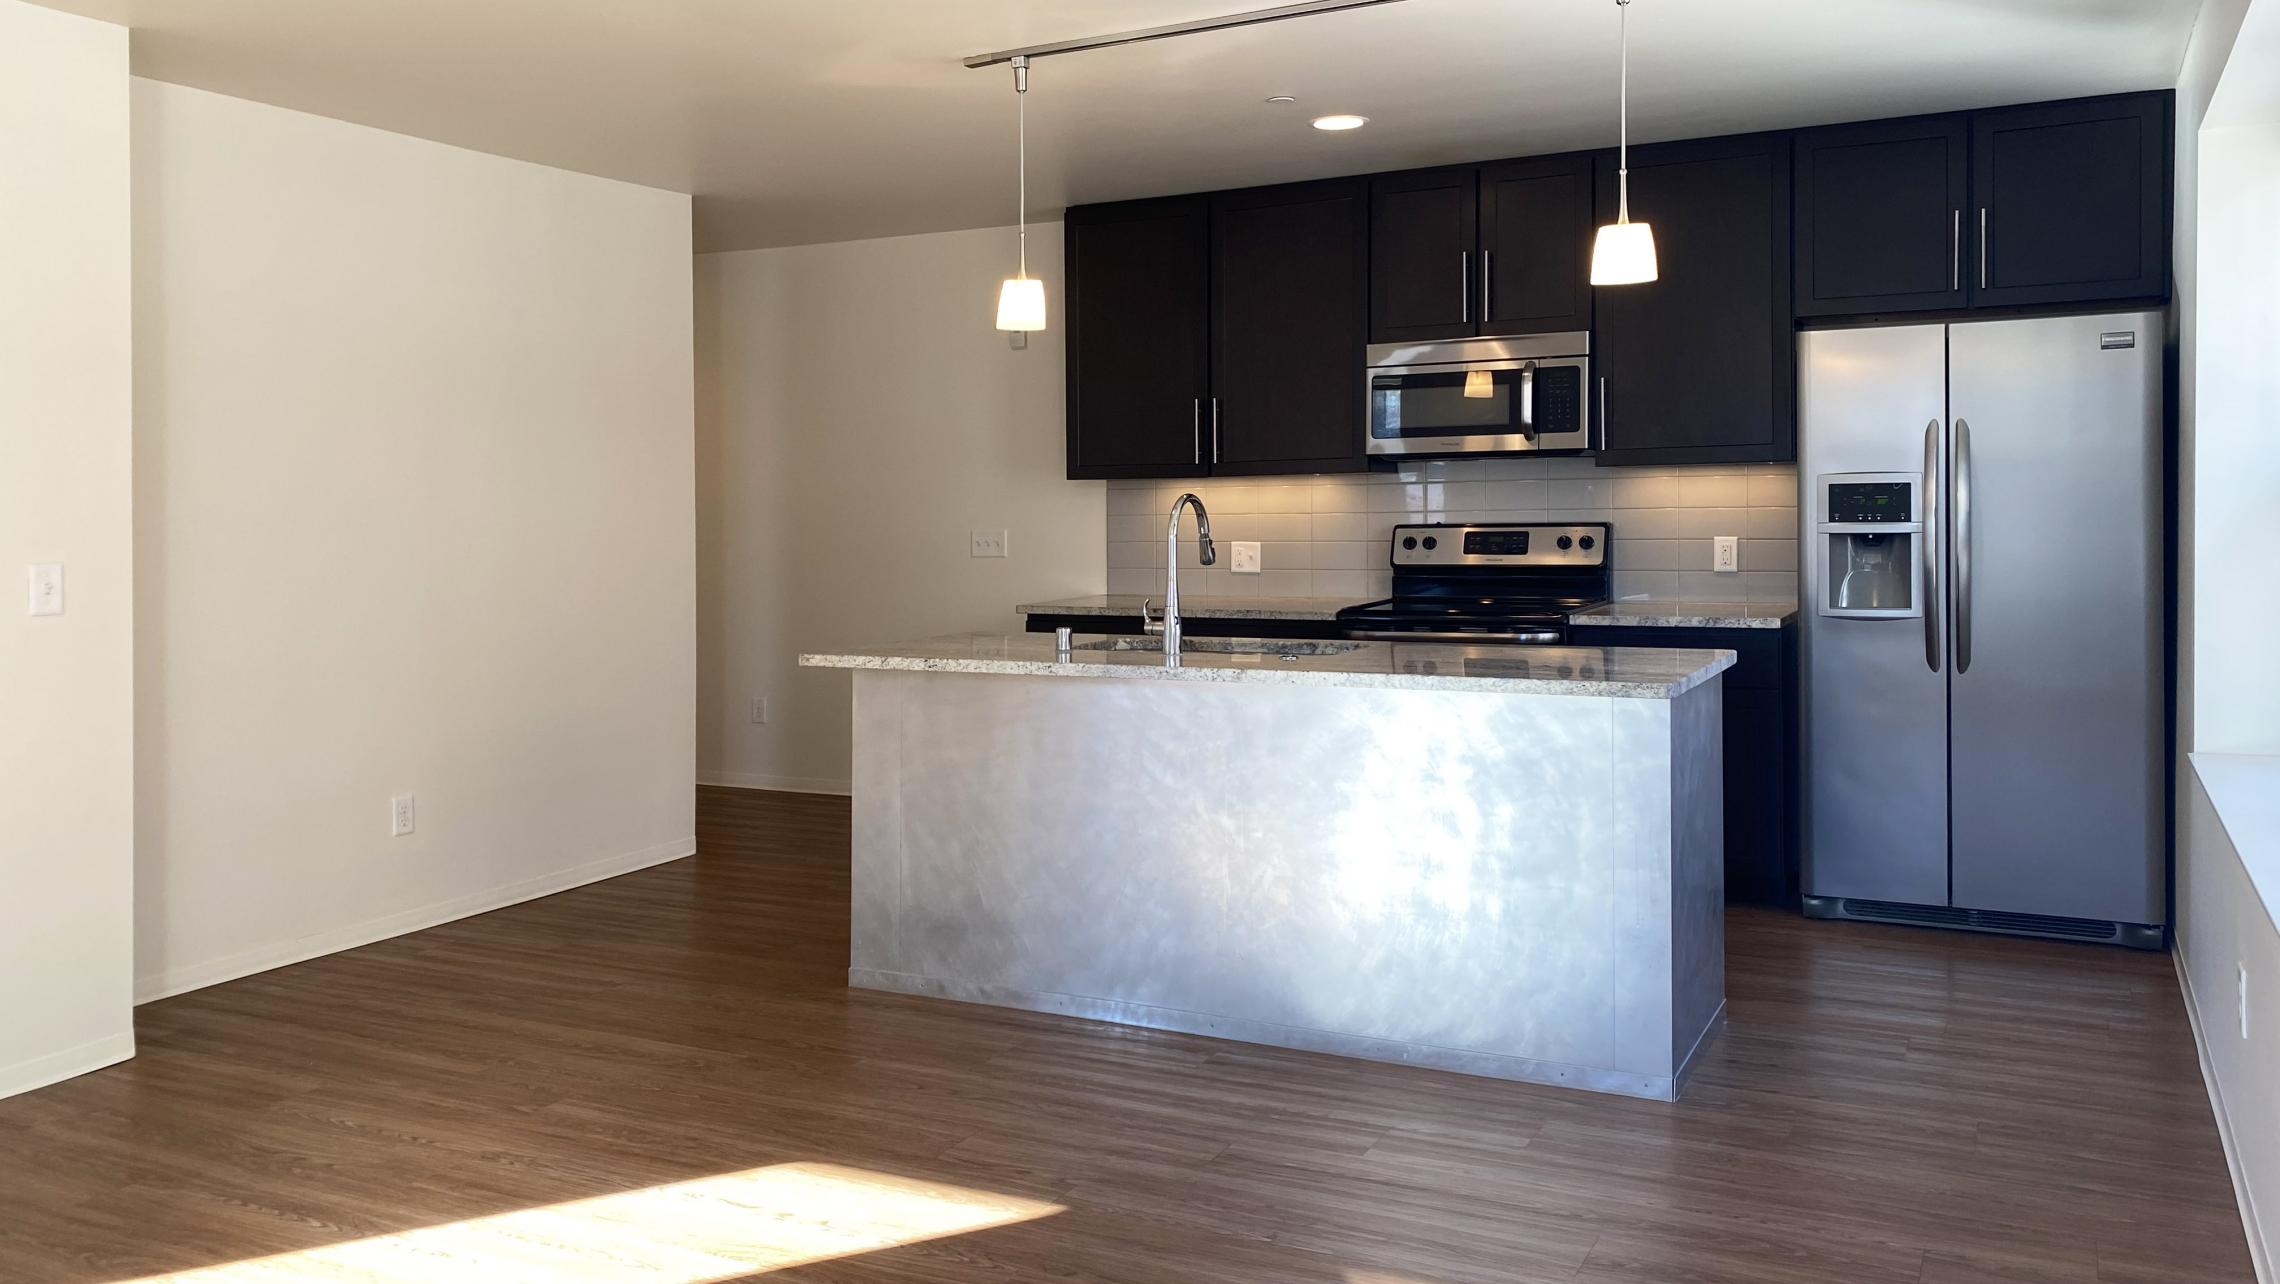 Capitol-Hill-Apartment-307-One-Bedroom-Downtown-Capitol-Lake-View-Modern-Upscale-Radiant-Heating-Kitchen-Living-Bathroom-Lifestyle-Madison-Home-Cats